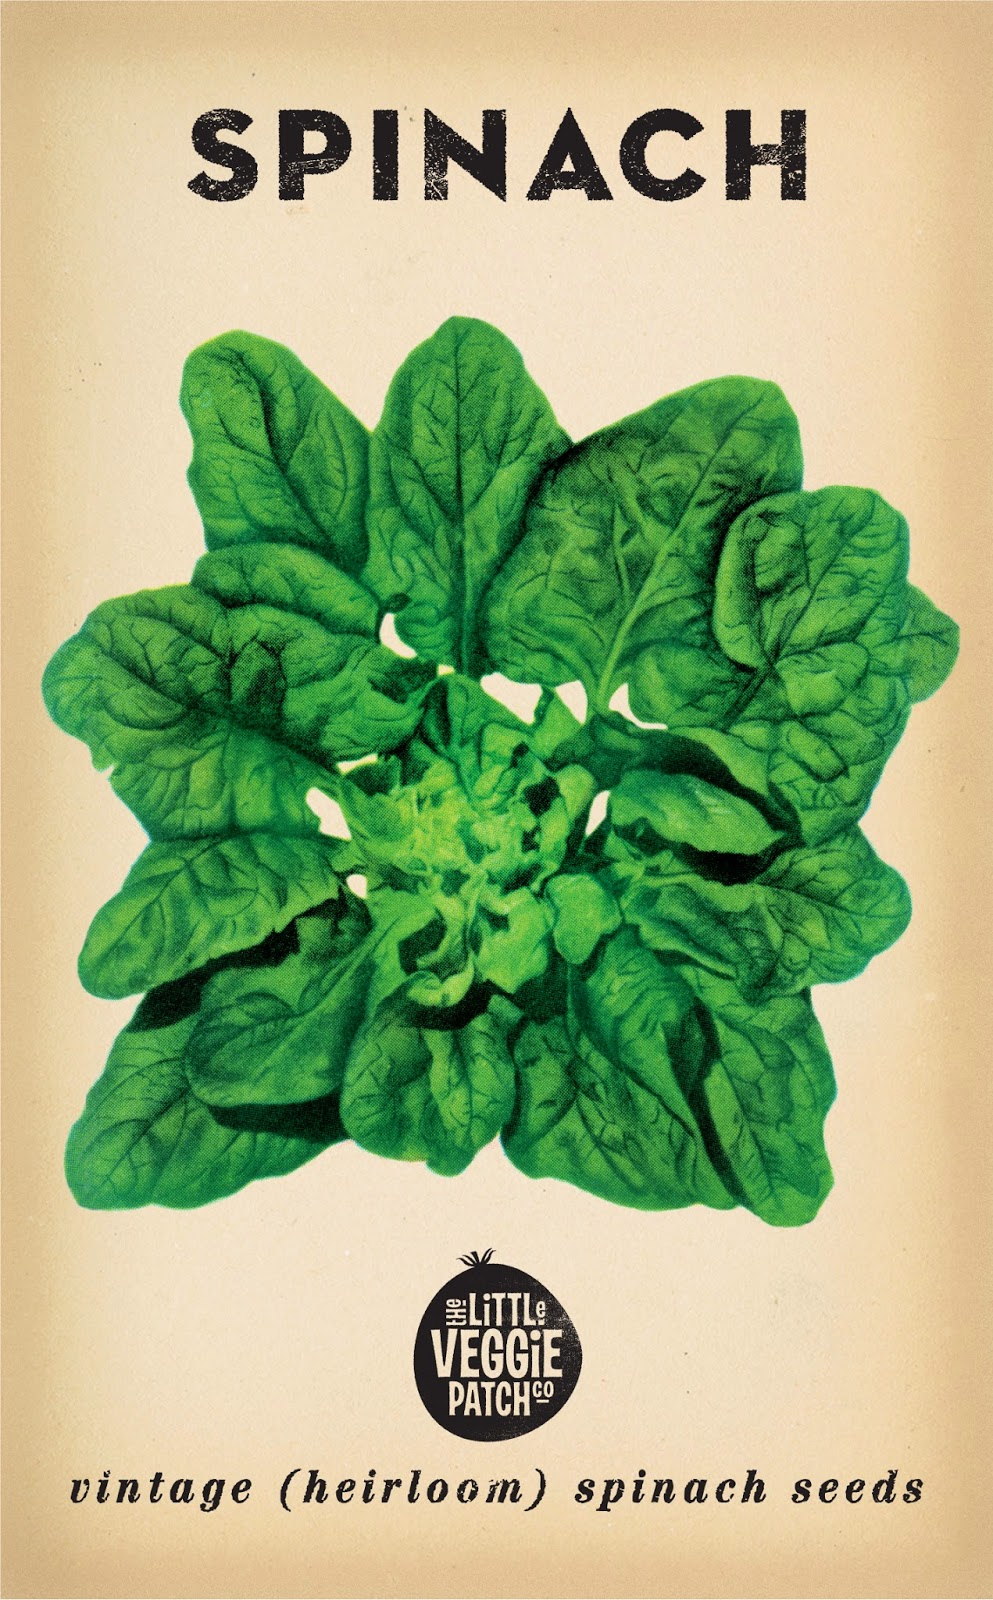 http://www.mrgift.com.au/the-little-veggie-patch-co/bloomsdale-spinach-seeds